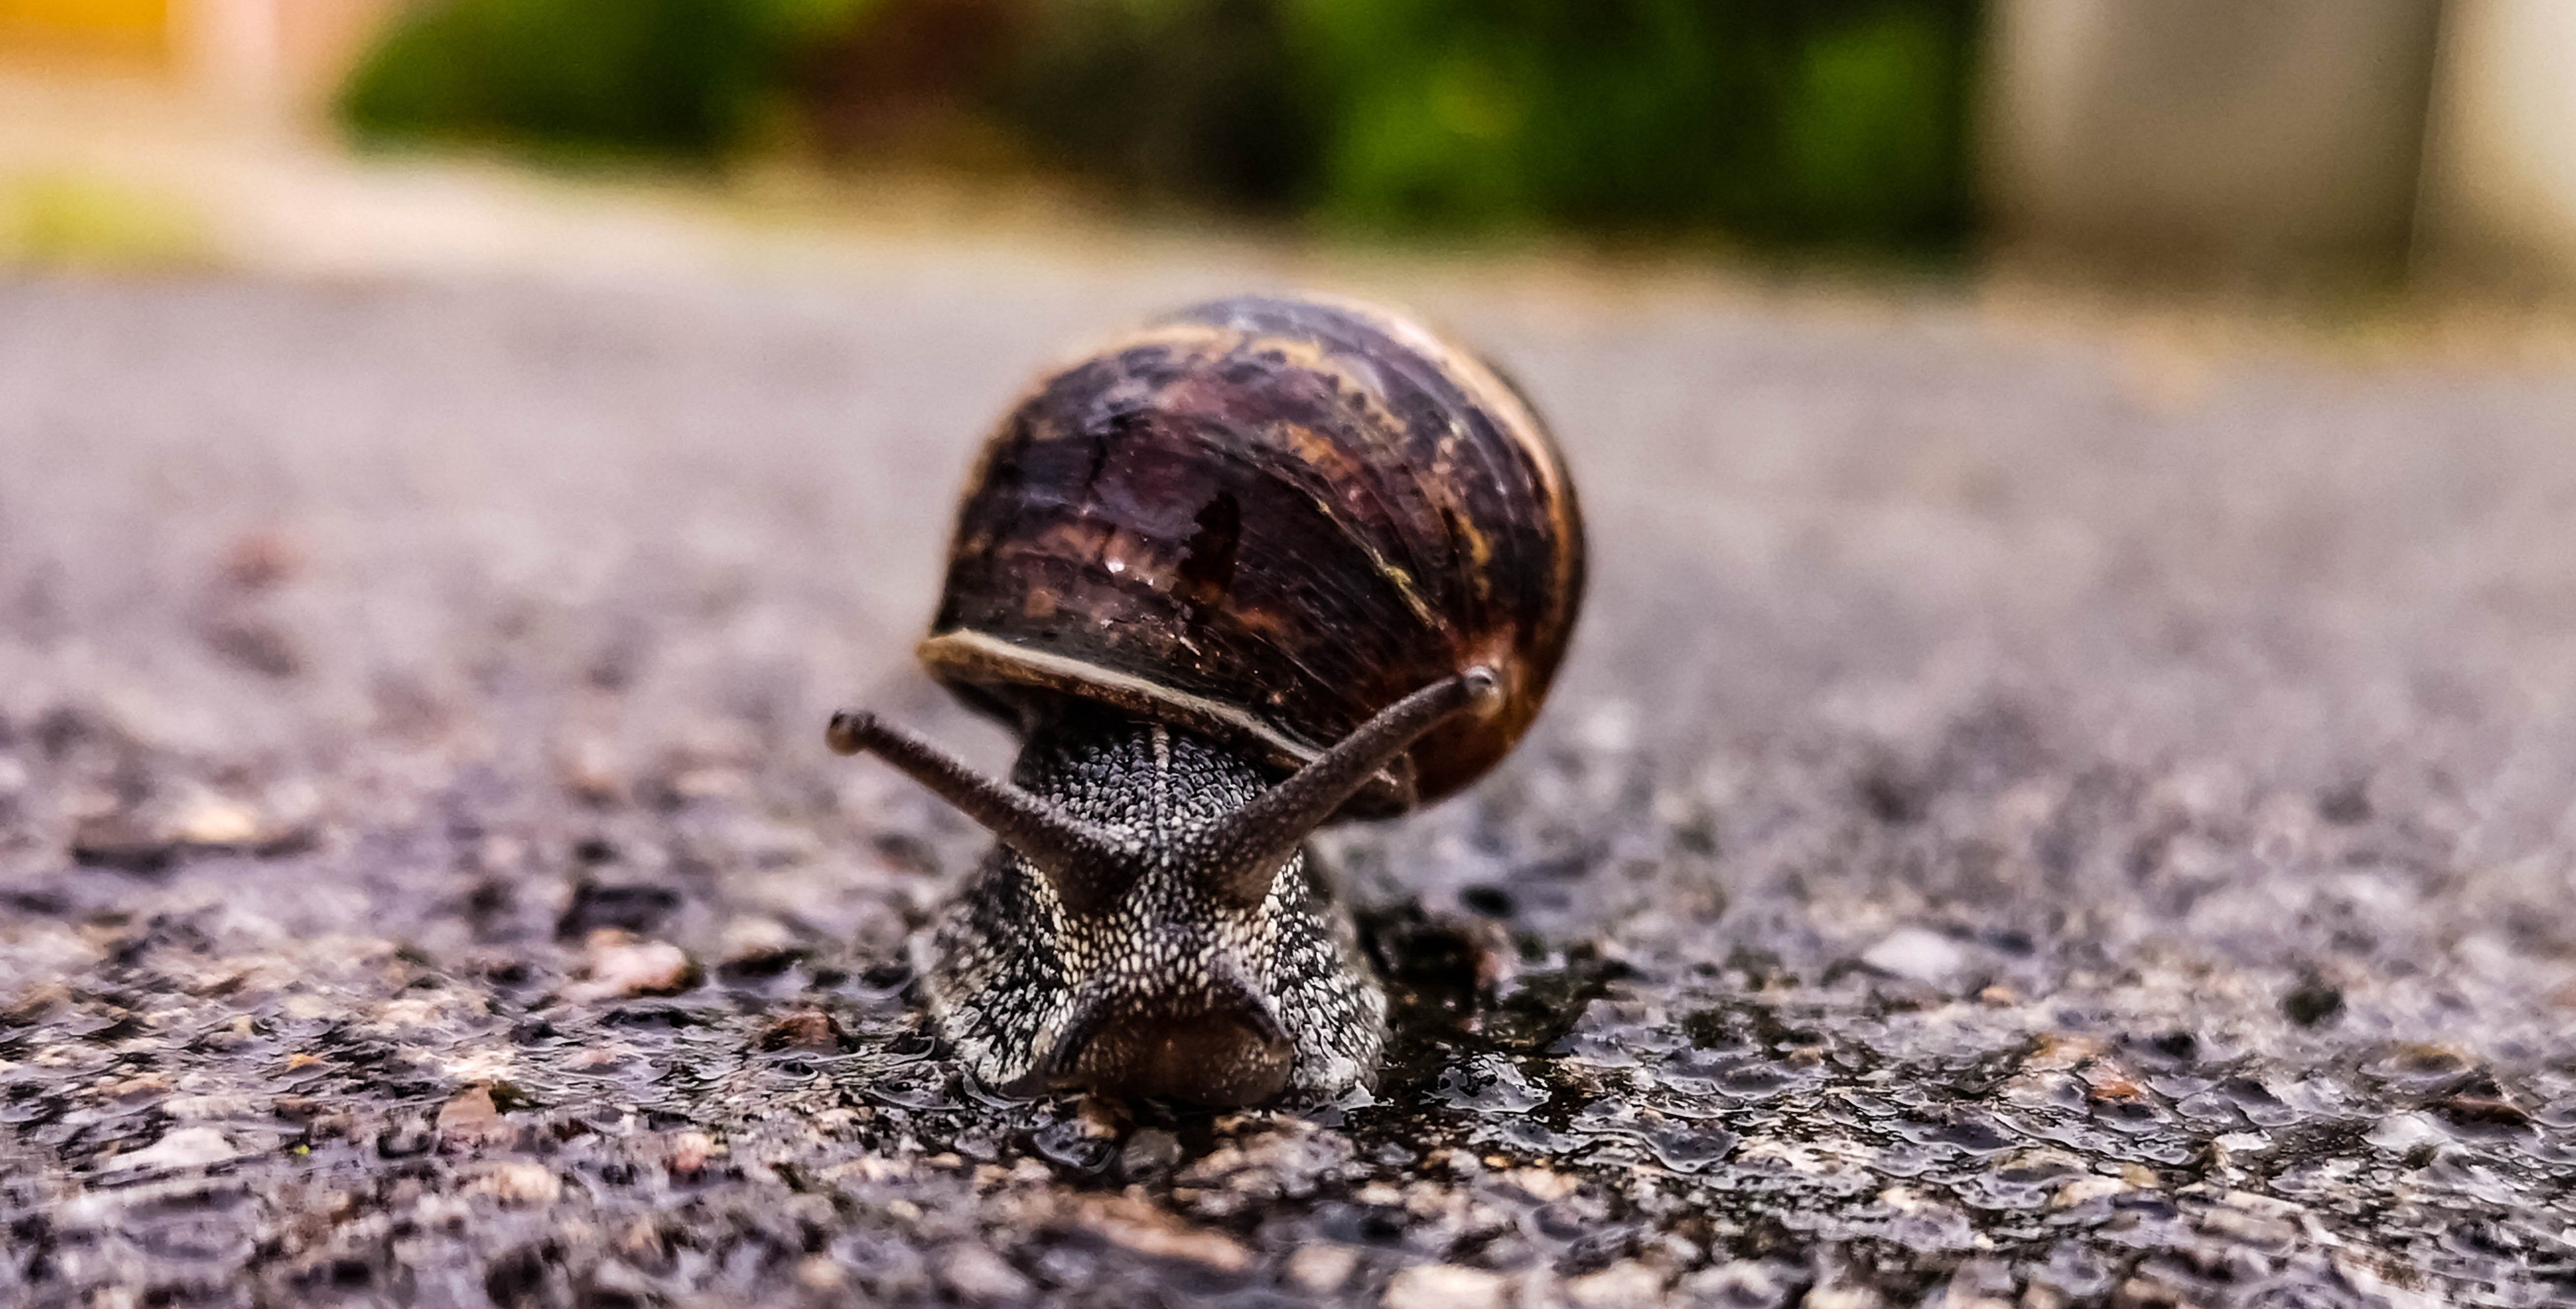 Snail showing how slow processes become when using bad data